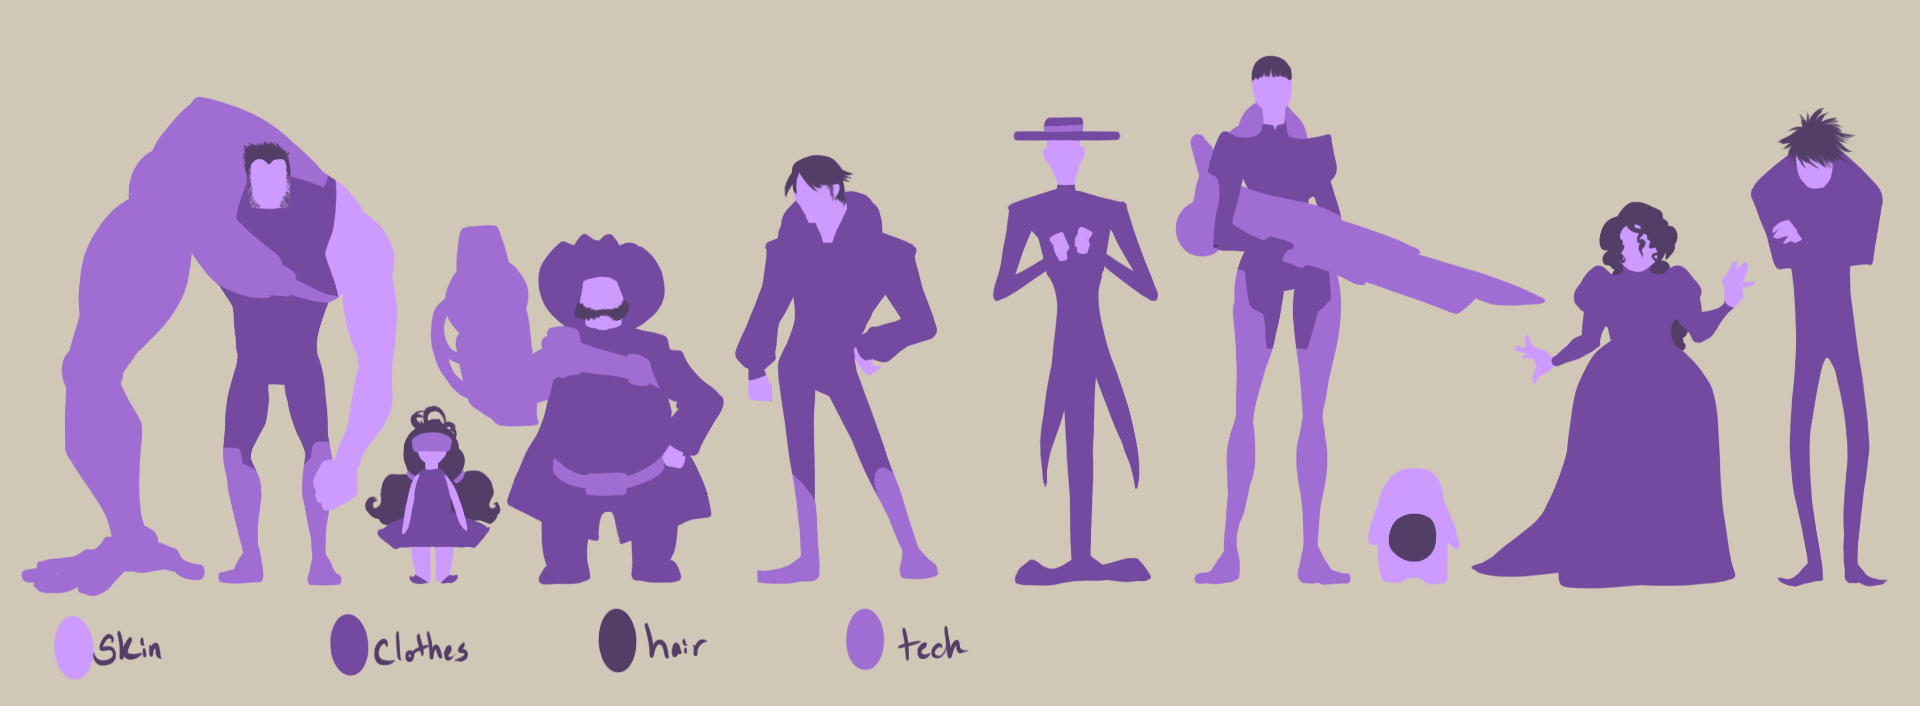 Space Cowyboys Silhouettes by Nytrinhia